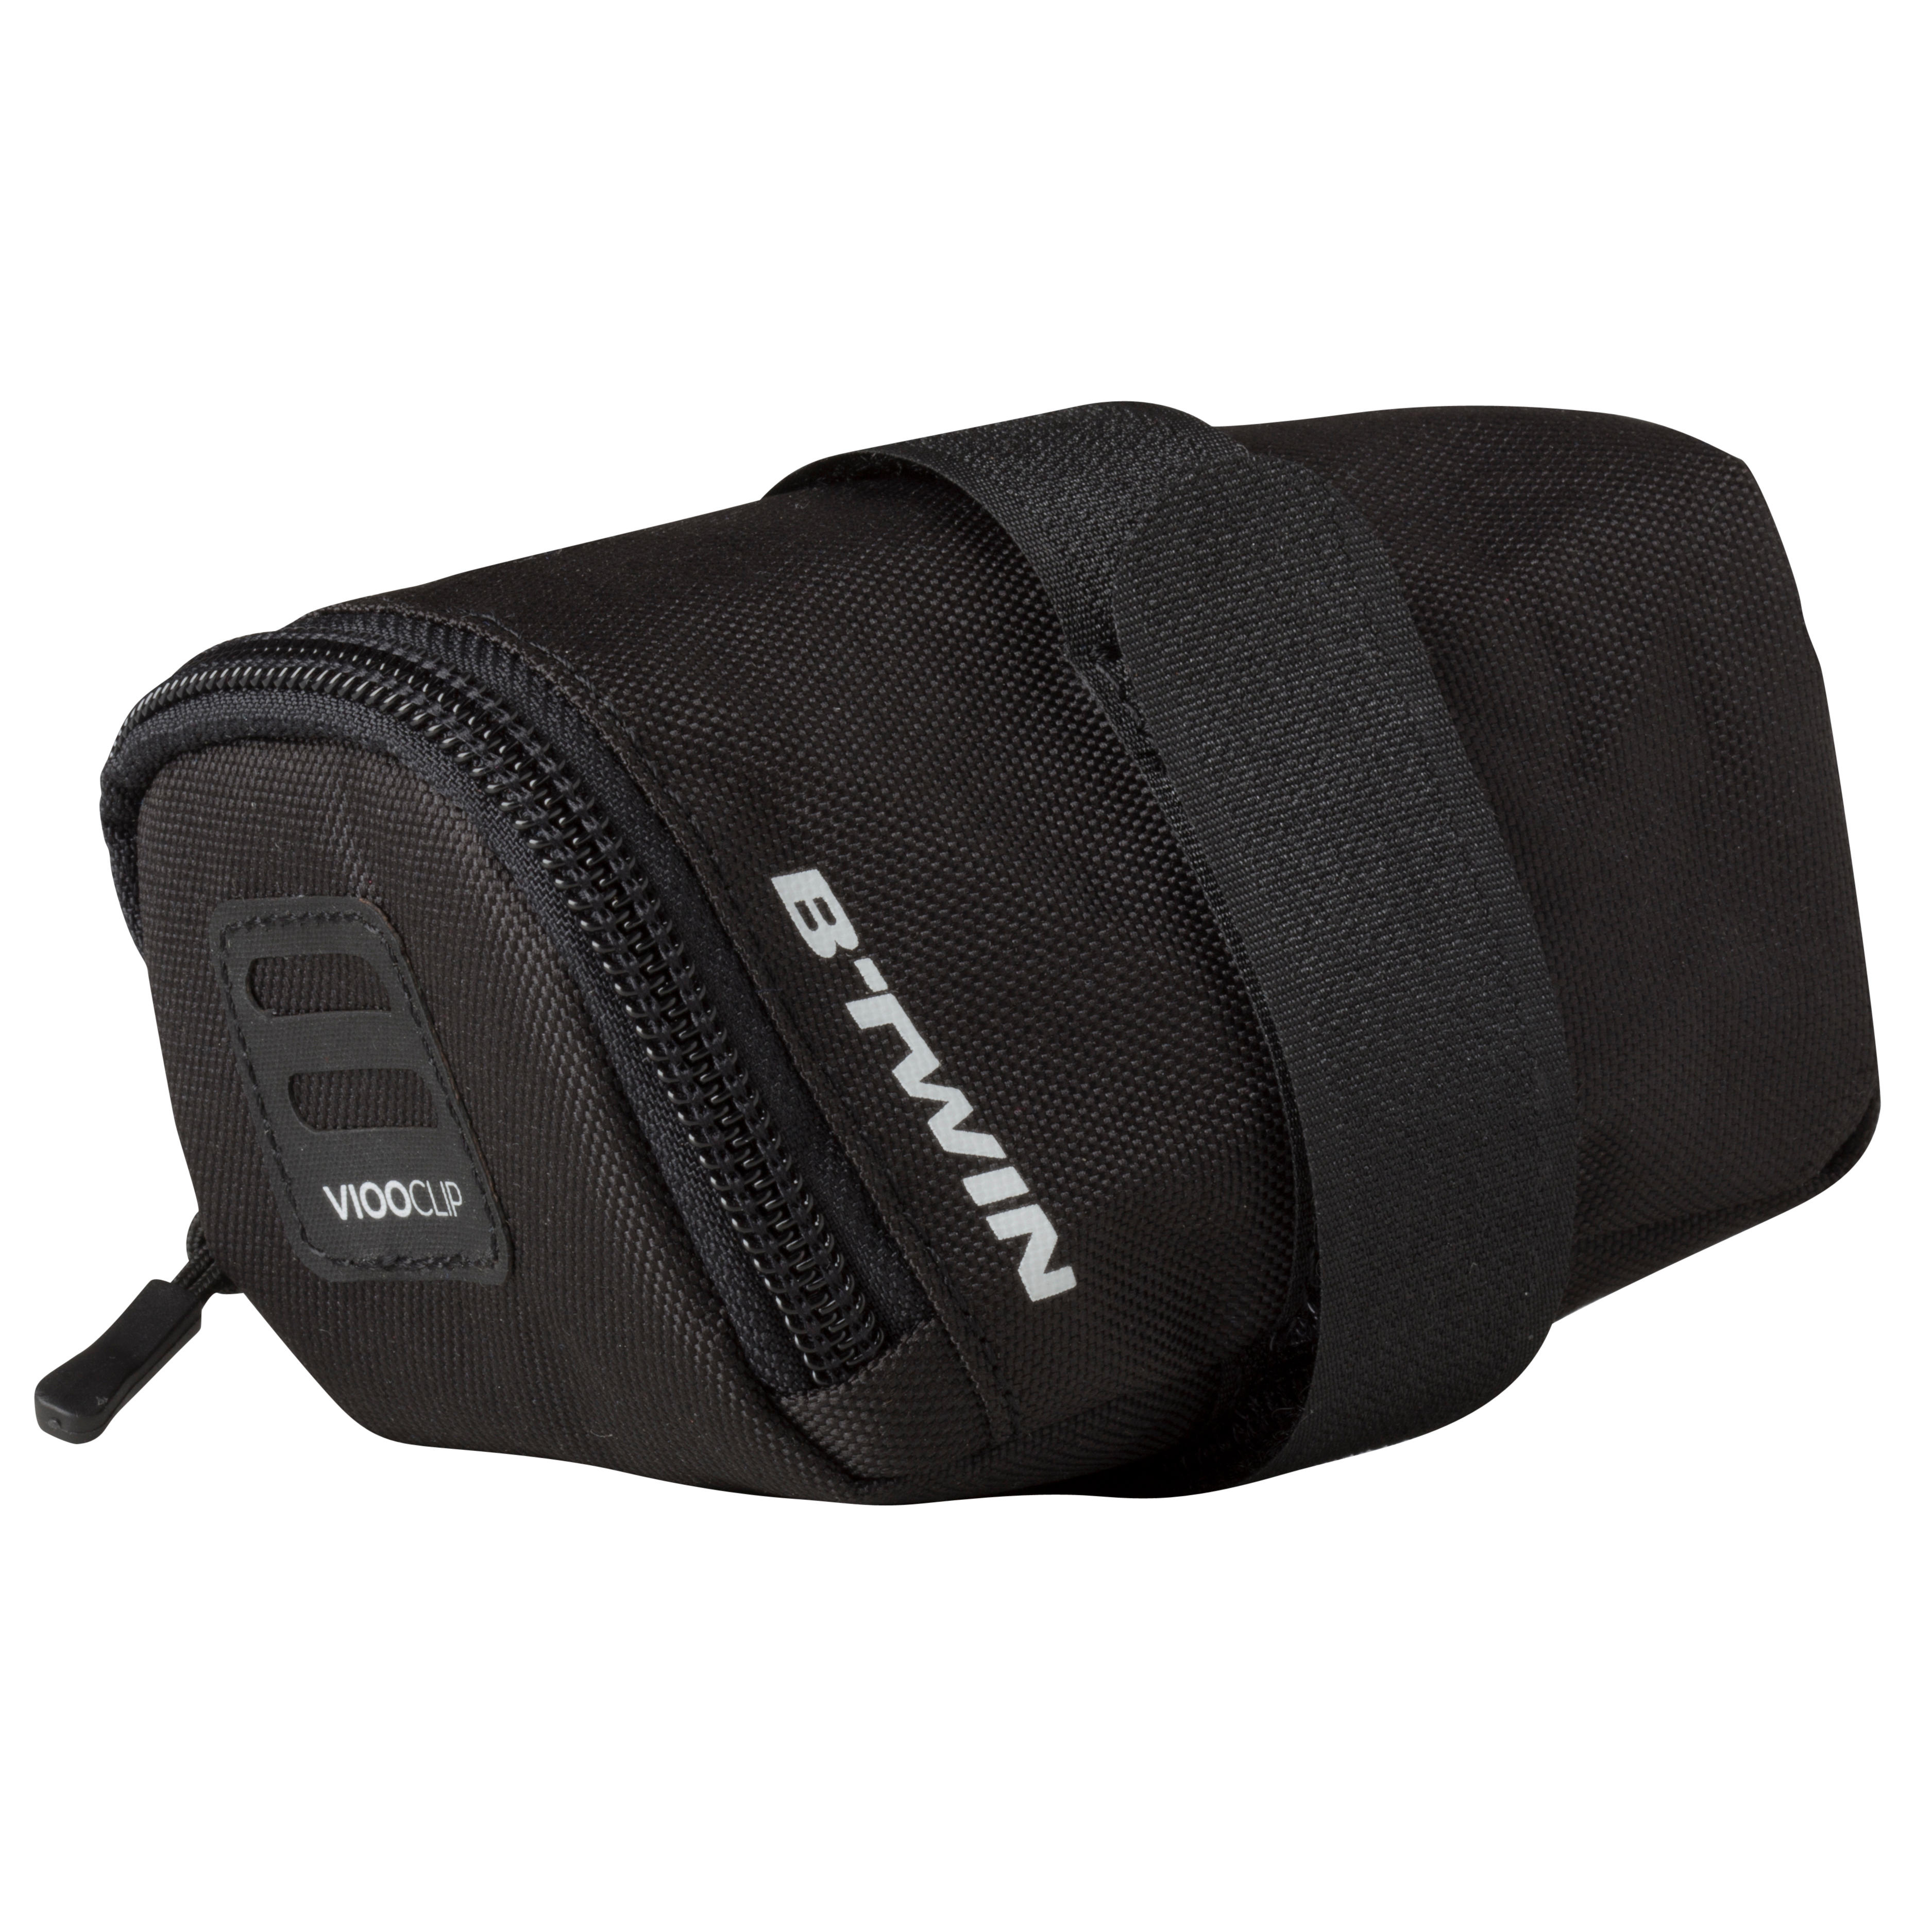 300 Bike Saddle Bag S 0.5 L - Black